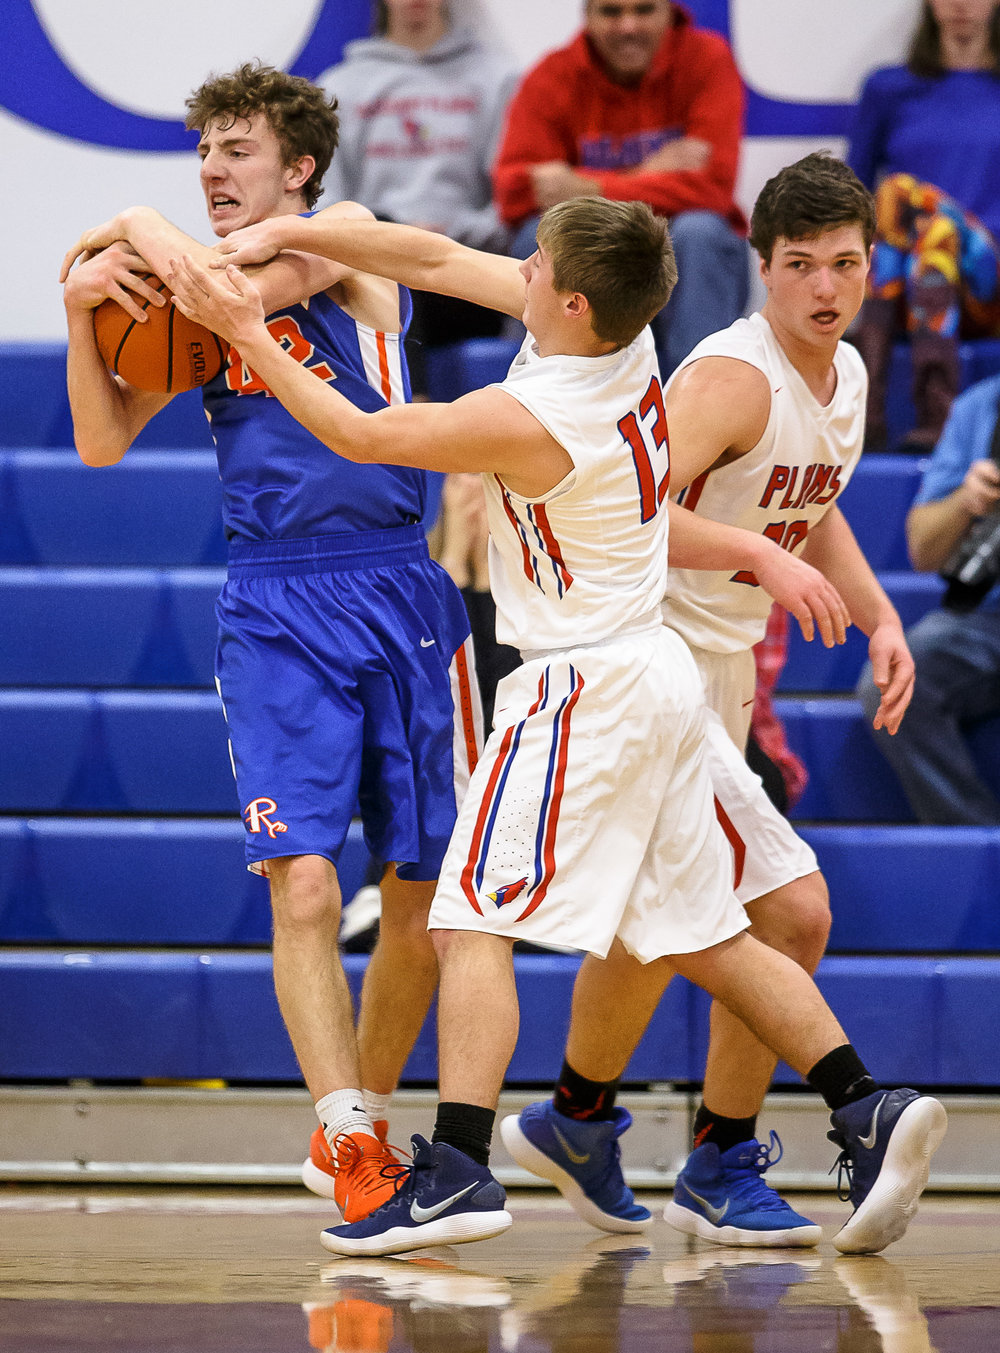 Riverton's Spencer Yoggerst (42) comes down with a rebound against Pleasant Plains' Kevin Ingram (13) in the first half during the second night of the Boys Sangamon County Tournament at Lincoln Land Community College's Cass Gymnasium, Tuesday, Jan. 9, 2018, in Springfield, Ill. [Justin L. Fowler/The State Journal-Register]